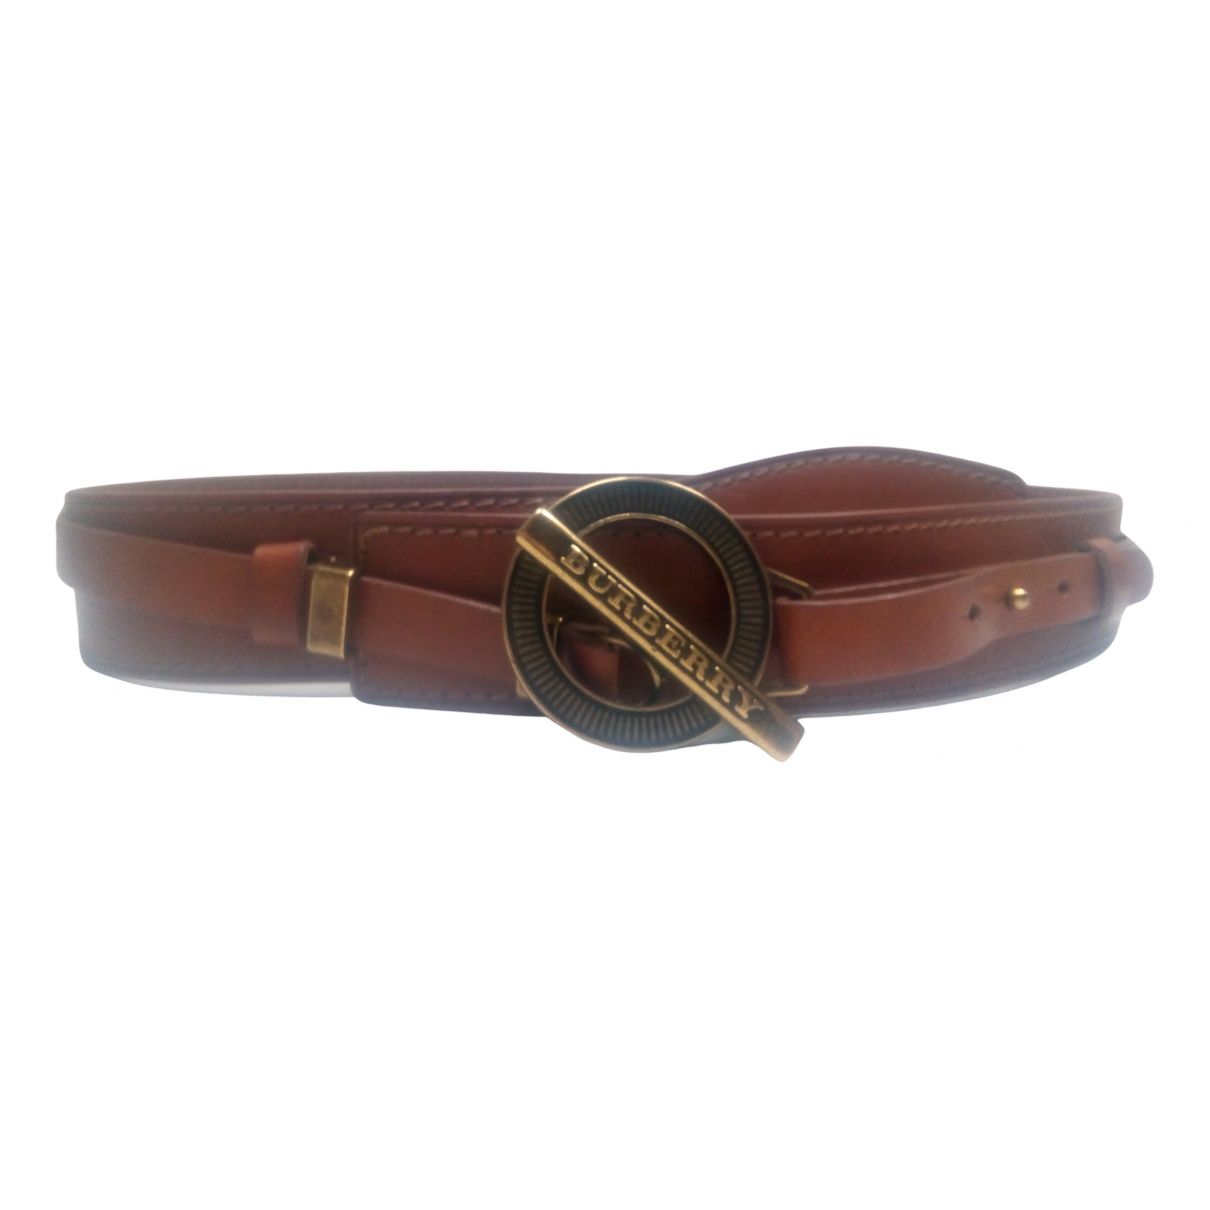 Burberry N Camel Leather belt for Women 85 cm